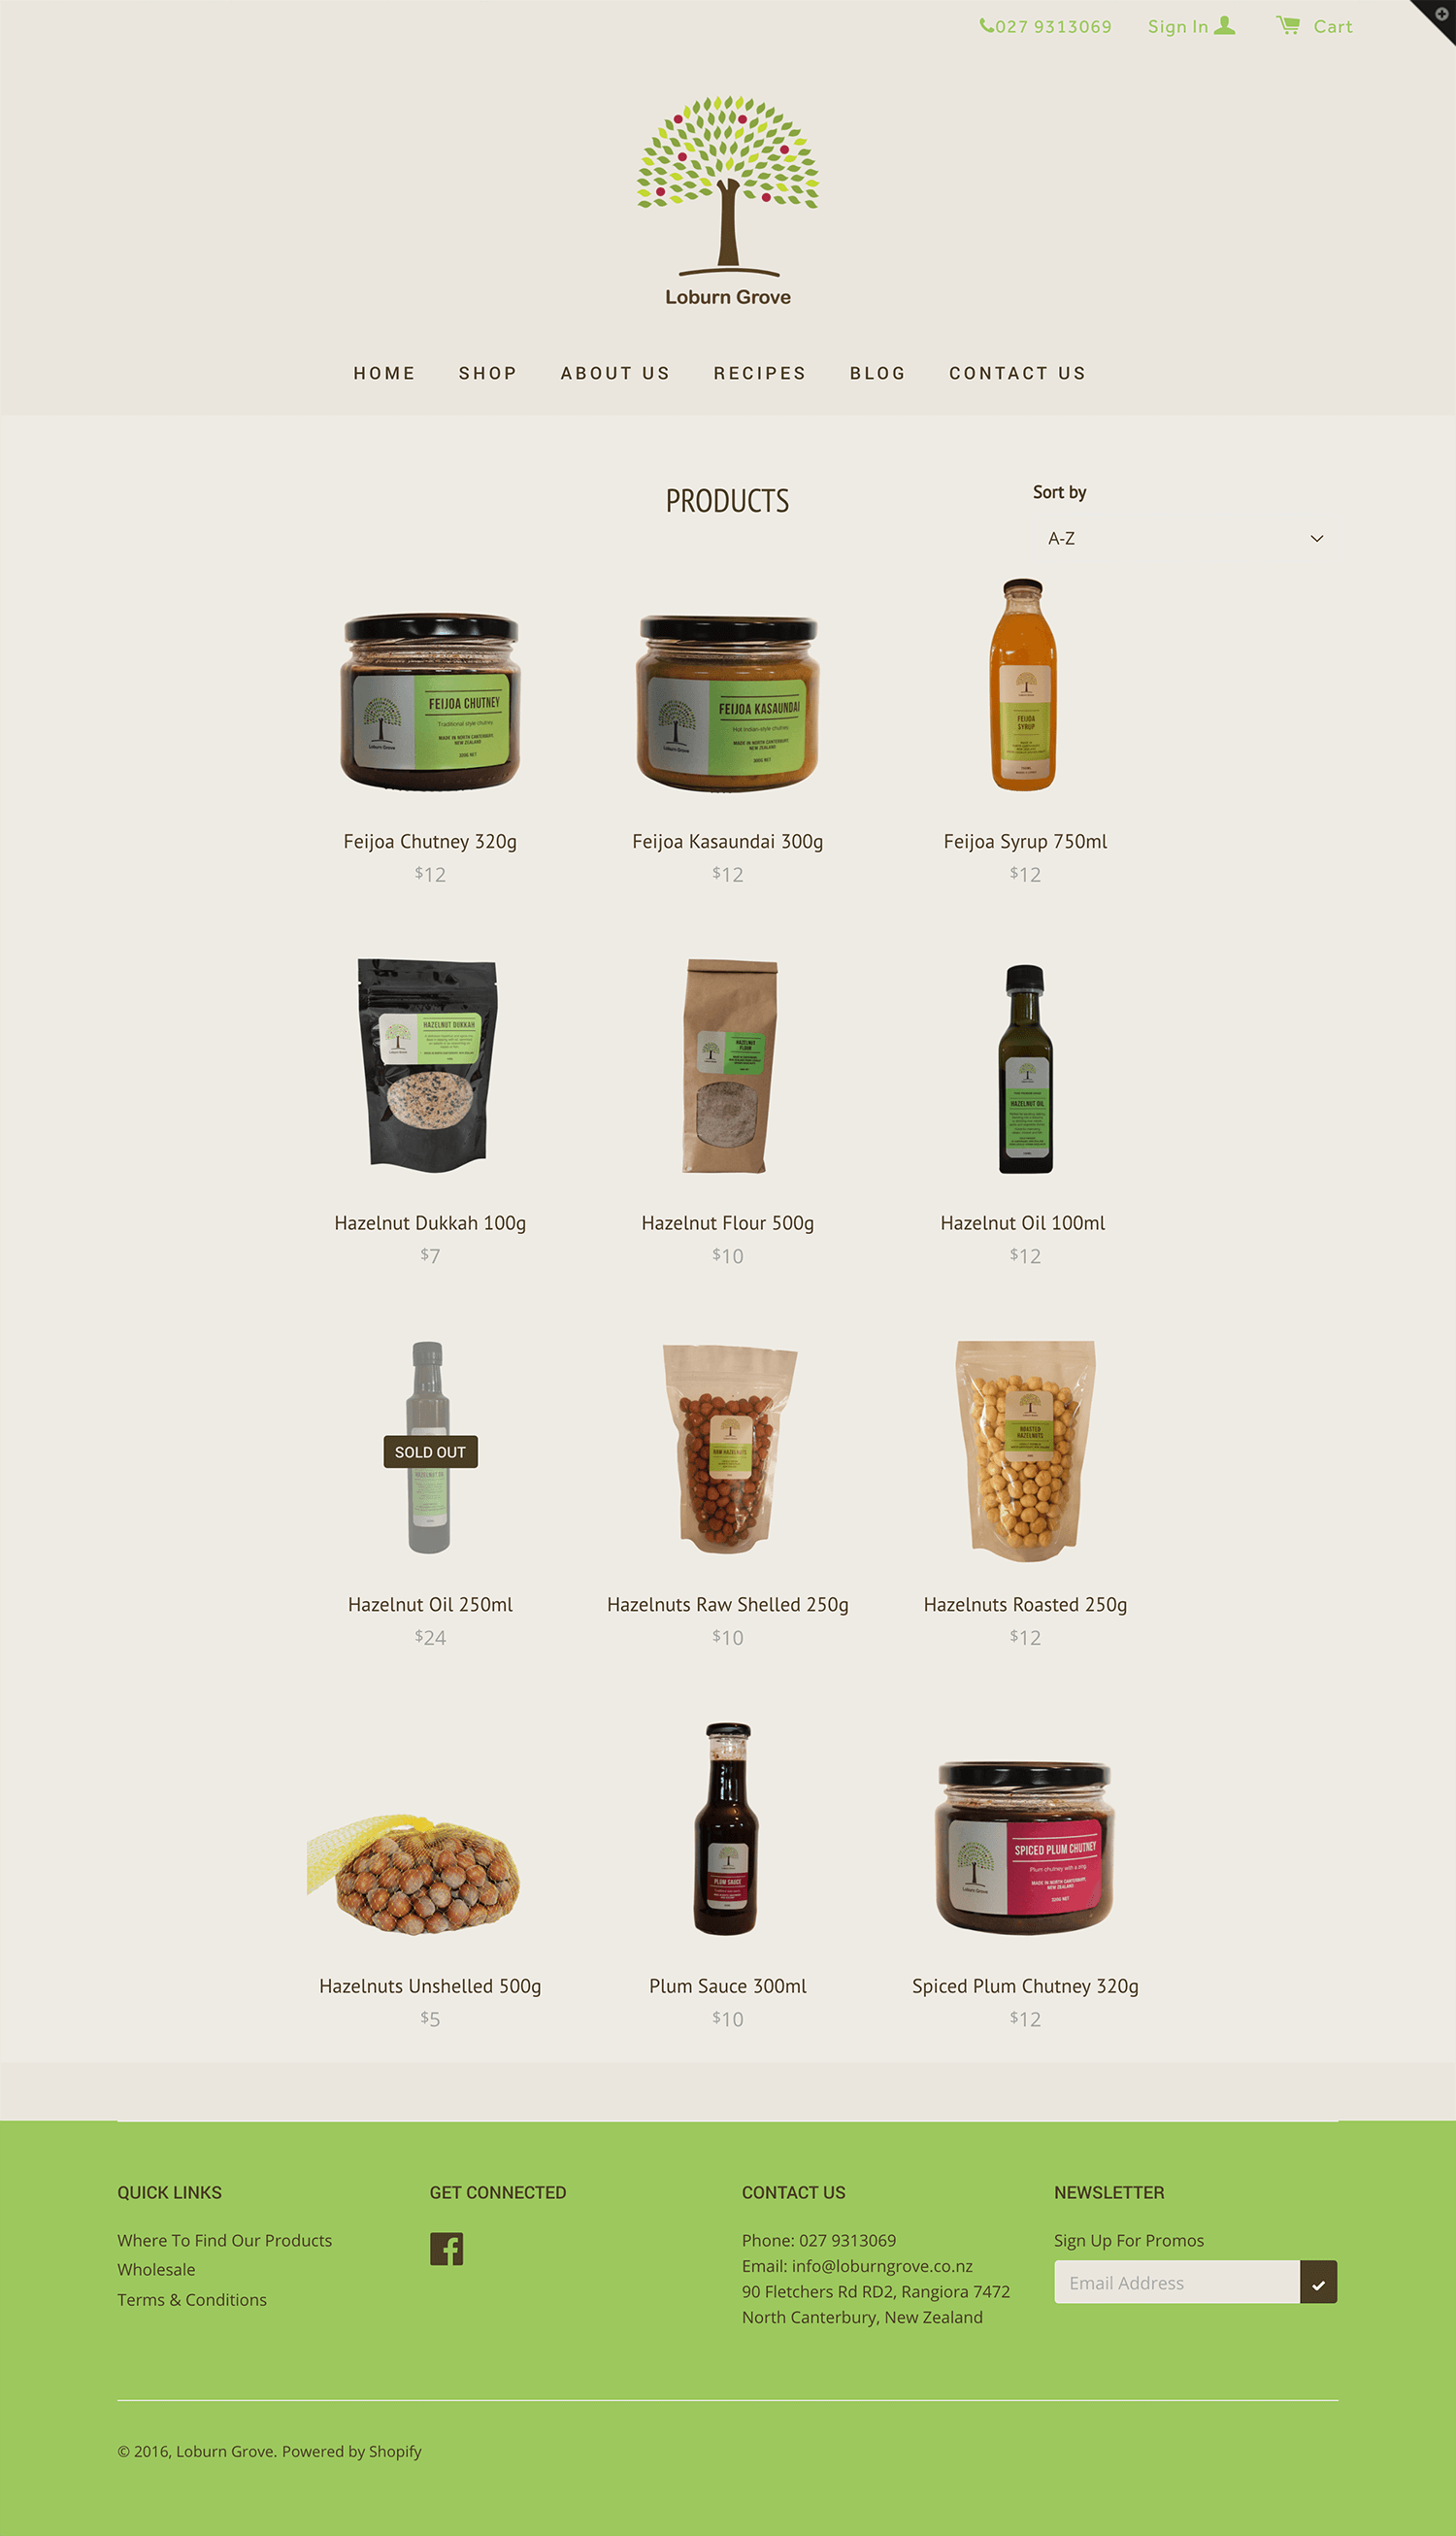 Loburn Grove Orchard - Products page